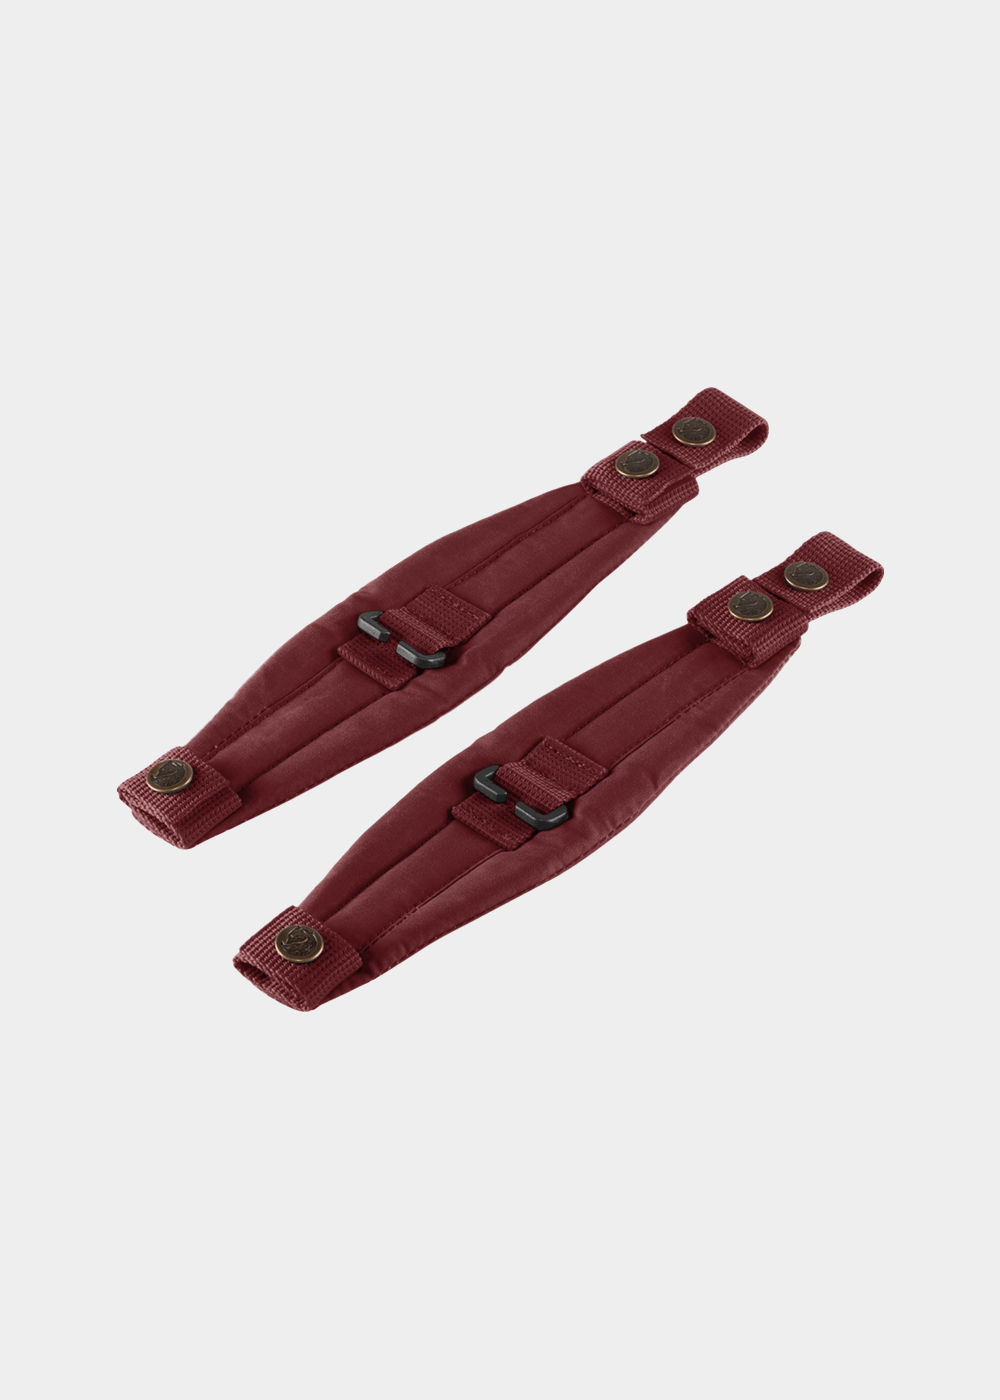 fjallalcaoxred--2-